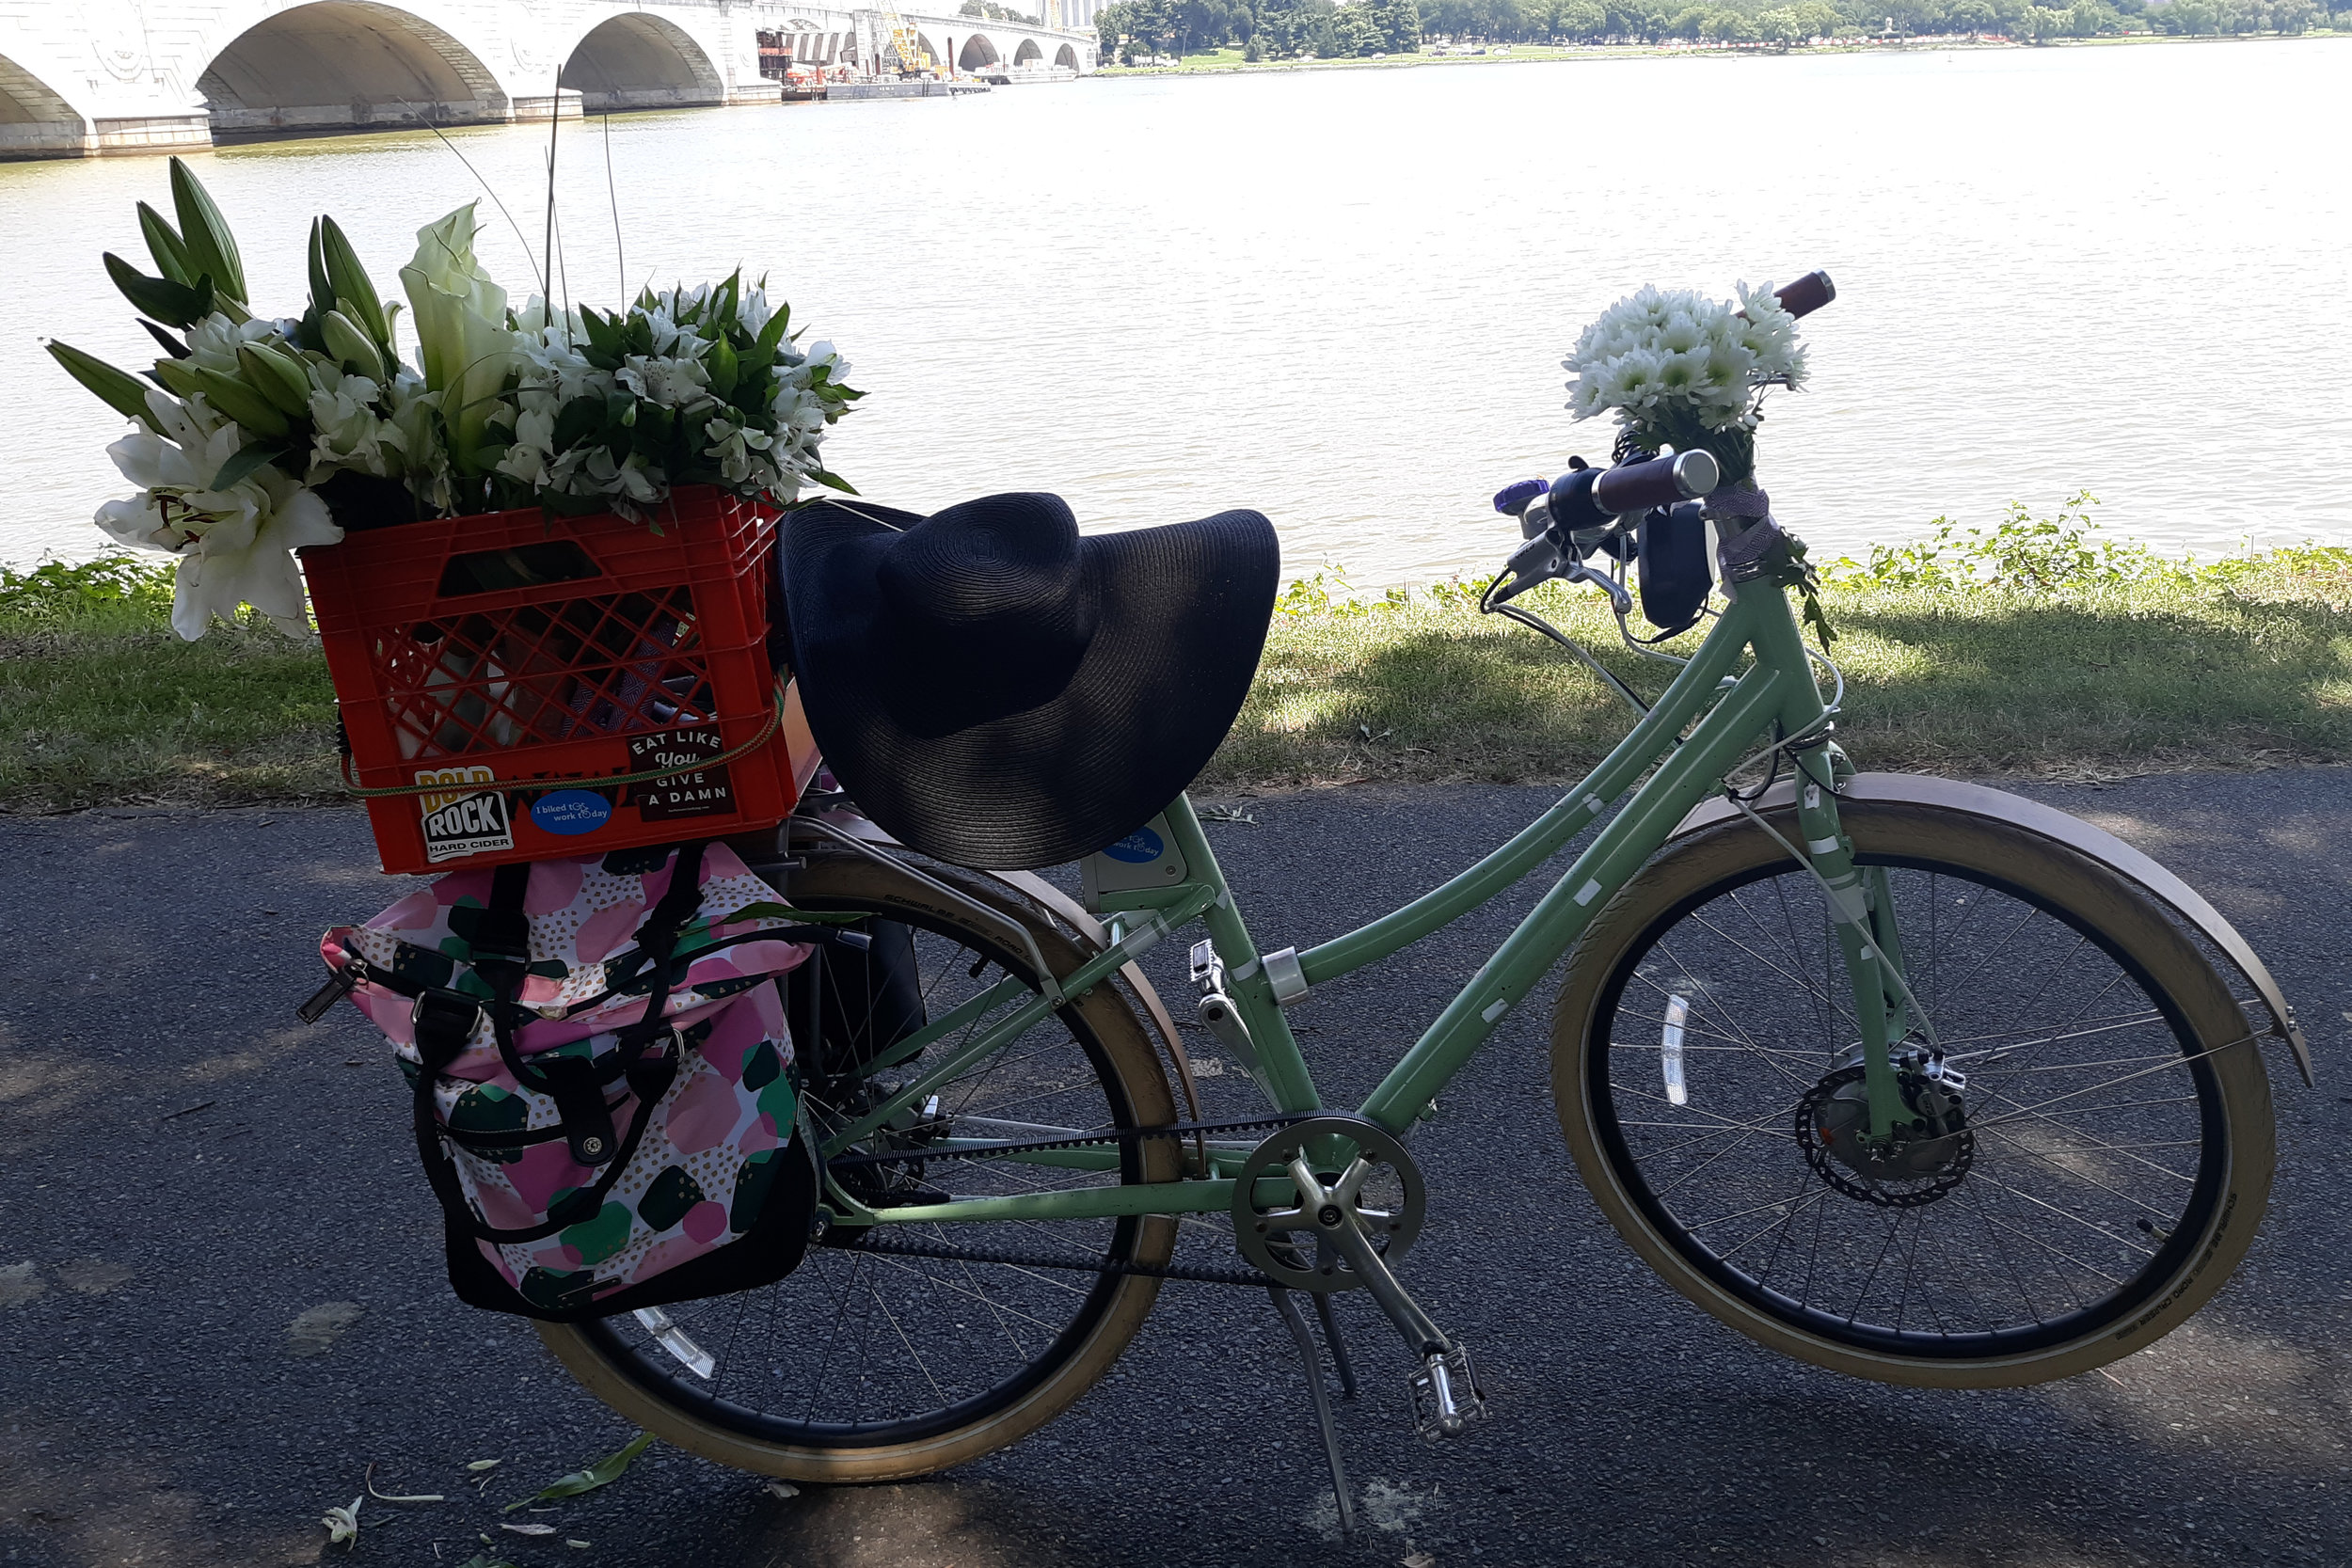 Monica Morin's main mode of transportation is her electric bike, on which she hauls groceries and bouquets of flowers.